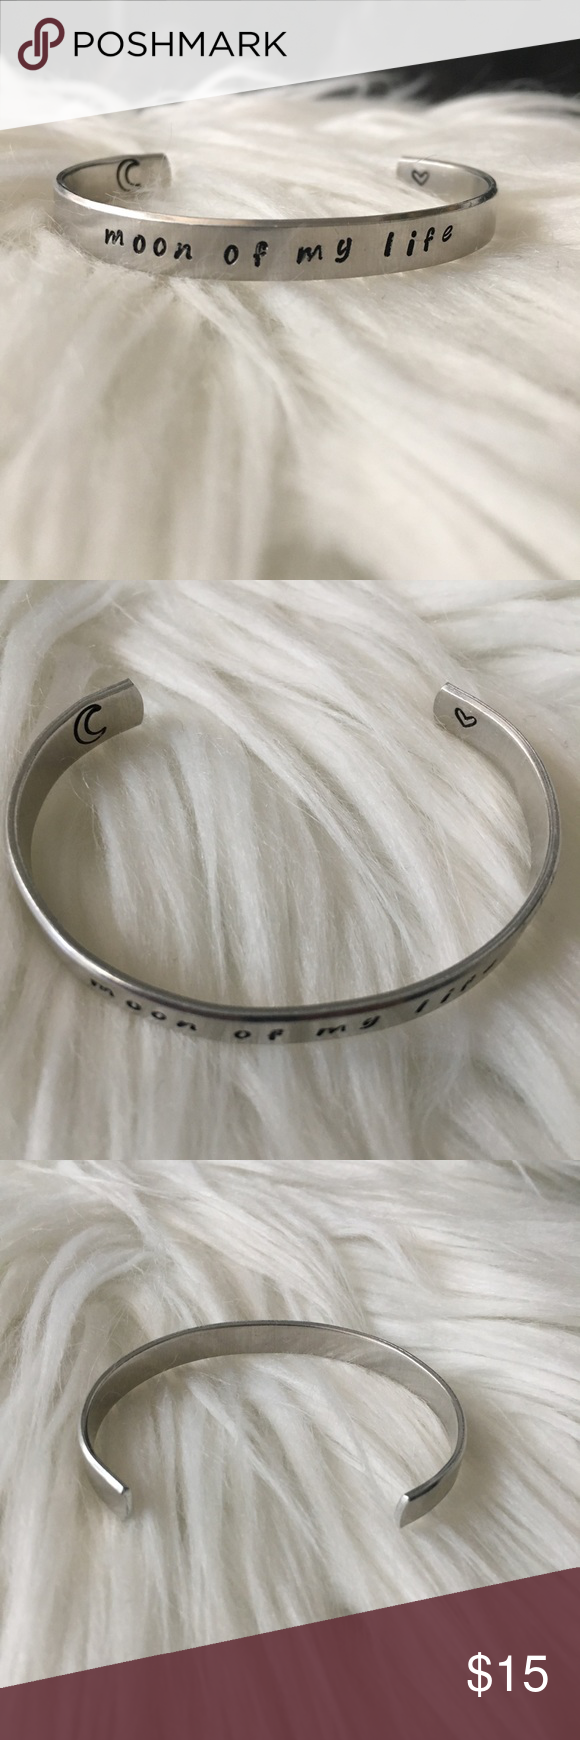 "Moon of My Life Bracelet (Game of Thrones) This is a metal (not sure what kind) bracelet with the inscription, ""moon of my life"" on the top. It also has a crescent moon and a heart inscribed on the inside. Game of Thrones Jewelry Bracelets #myposhpicks"